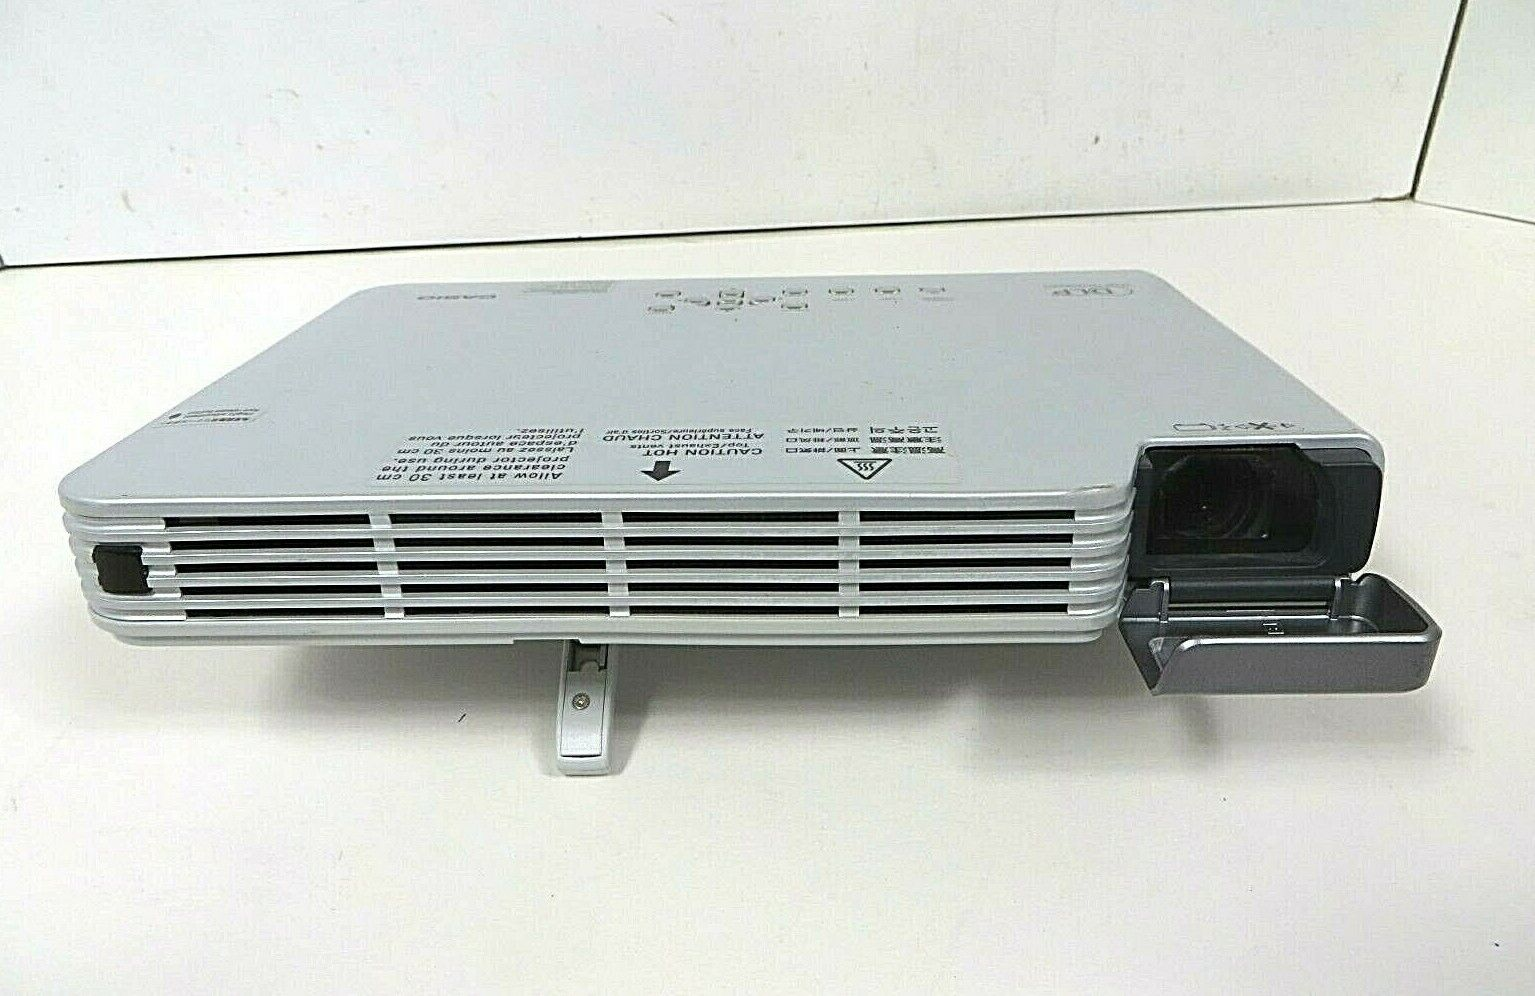 Casio XJ-S25 DLP Projector (Lamp Hrs : 311 hrs)